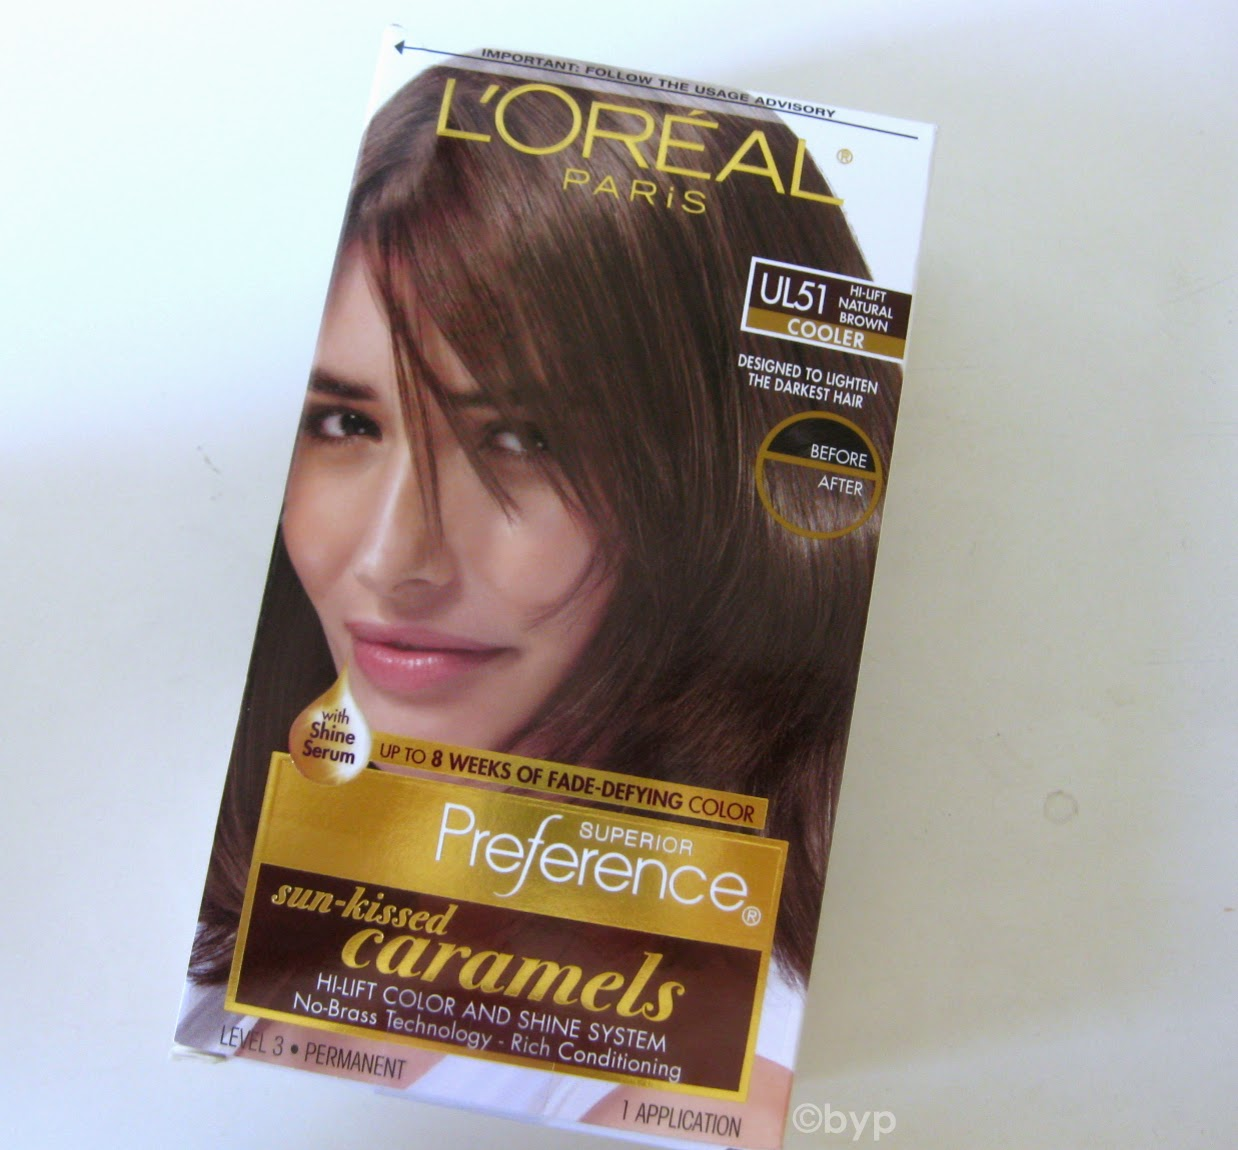 ... : /Hair/ L'Oreal Preference Sun-Kissed Caramels Hi-Lift Natural Brown